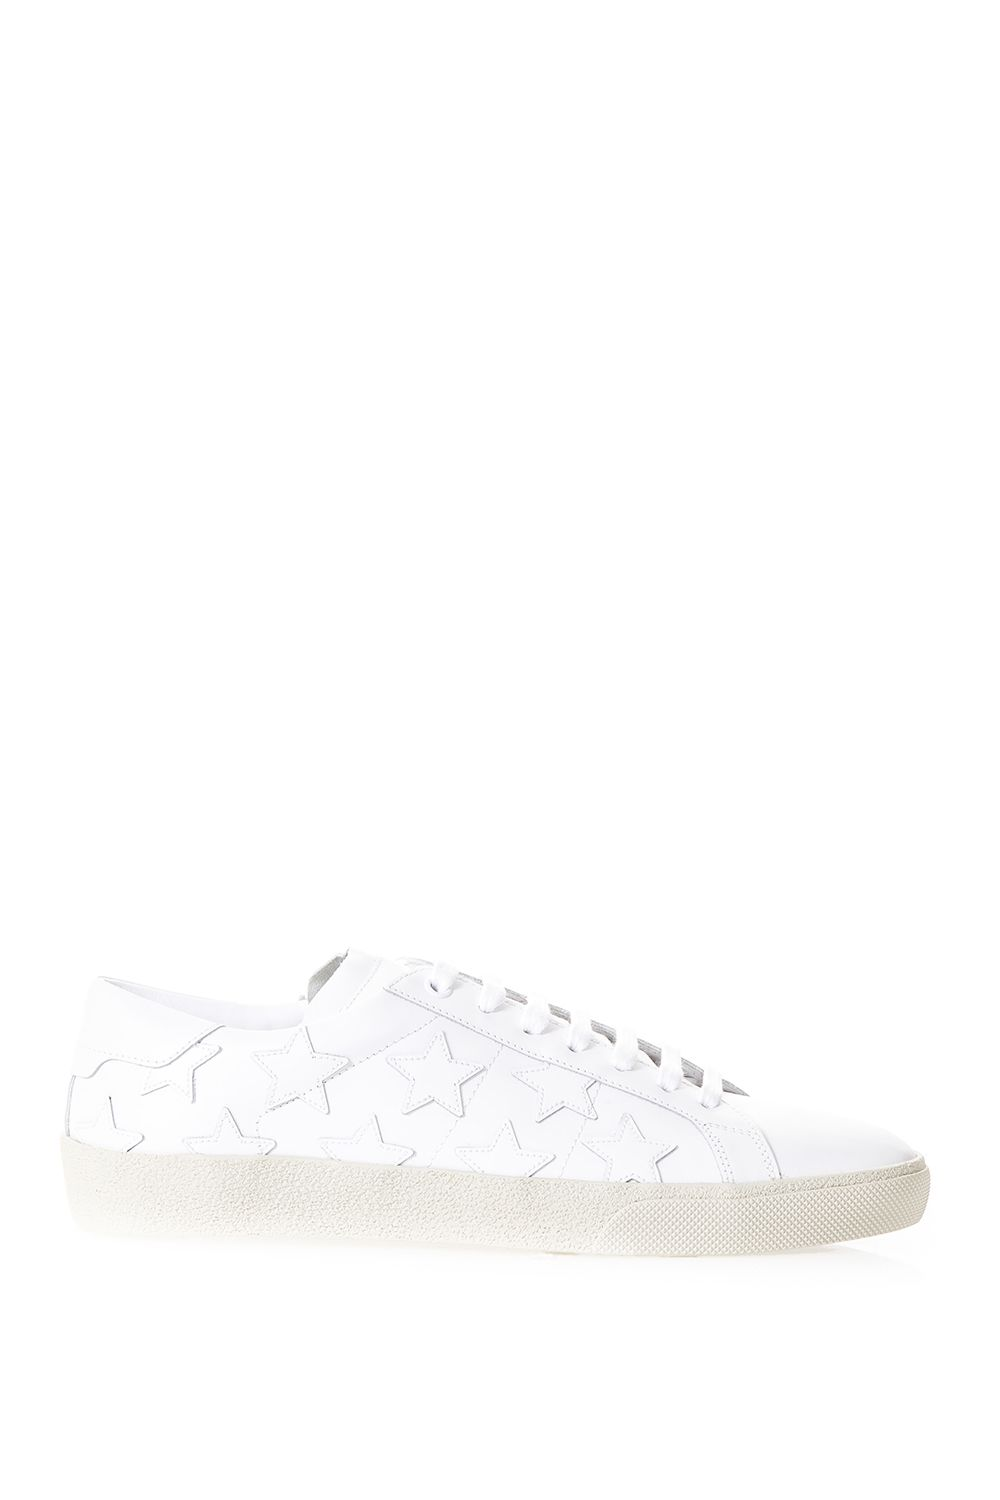 Saint Laurent Signature Court Classic Sl-06 California Sneakers In Distressed Leather